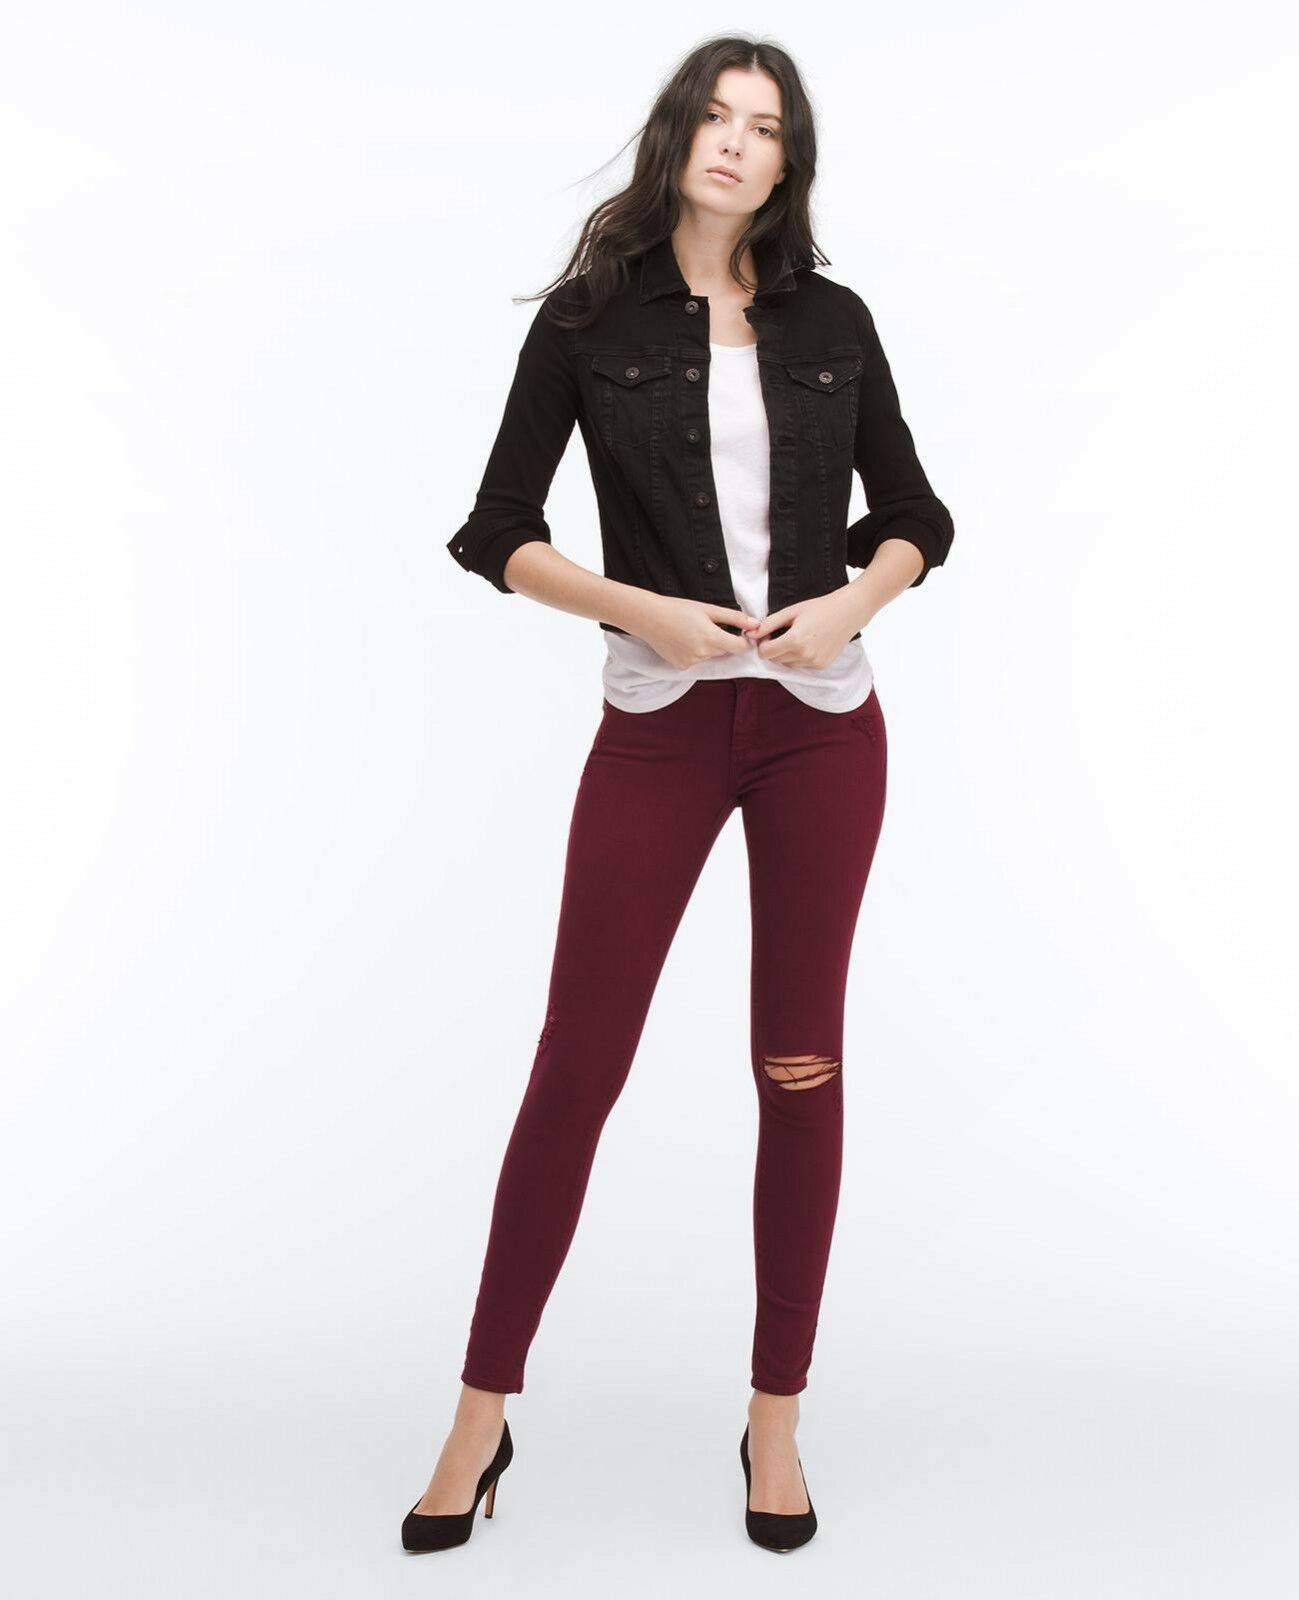 NEW NWT  215 AG ADRIANO goldSCHMIED THE LEGGING SUPER SKINNY JEANS SZ 28